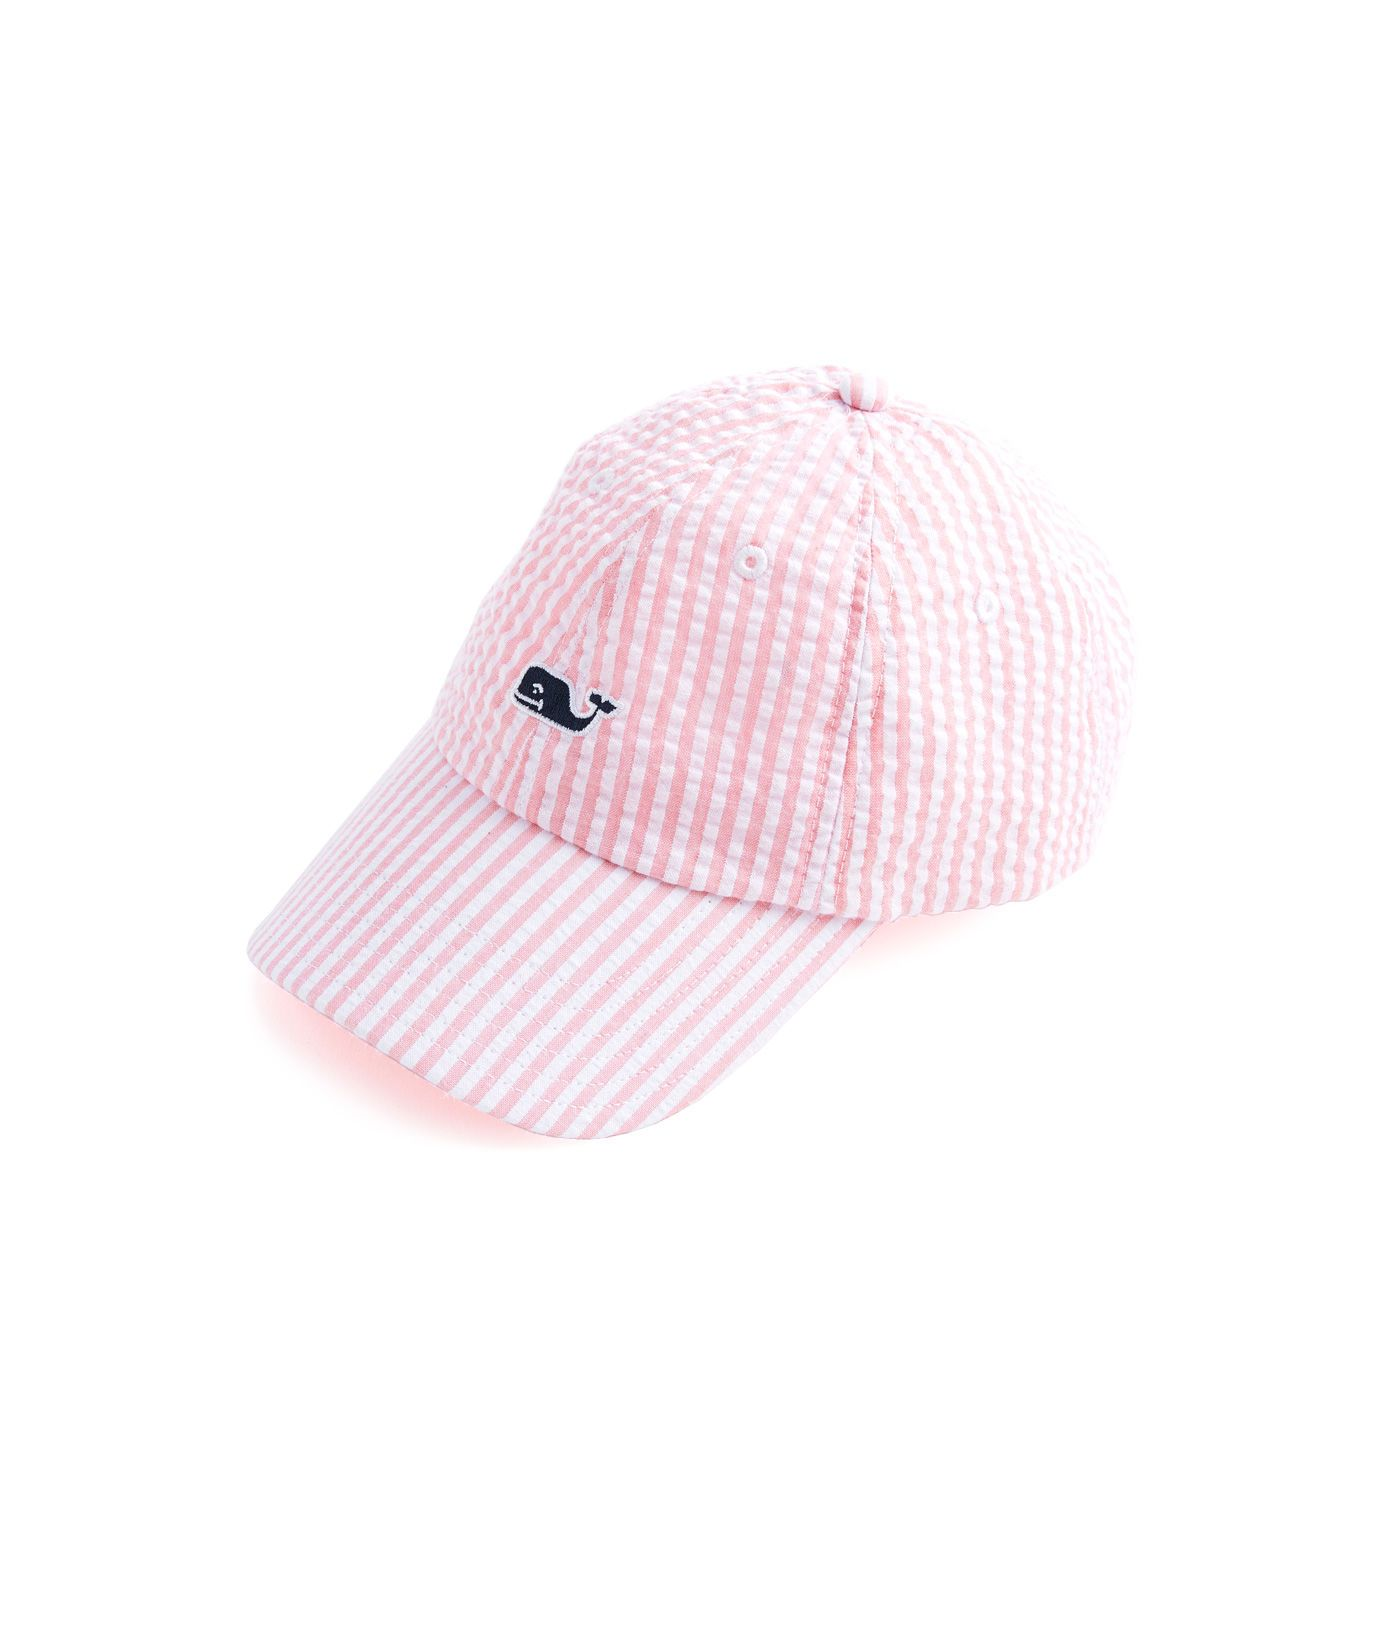 c68220609 Shop Girls Seersucker Baseball Hat at vineyard vines | Baby girl ...